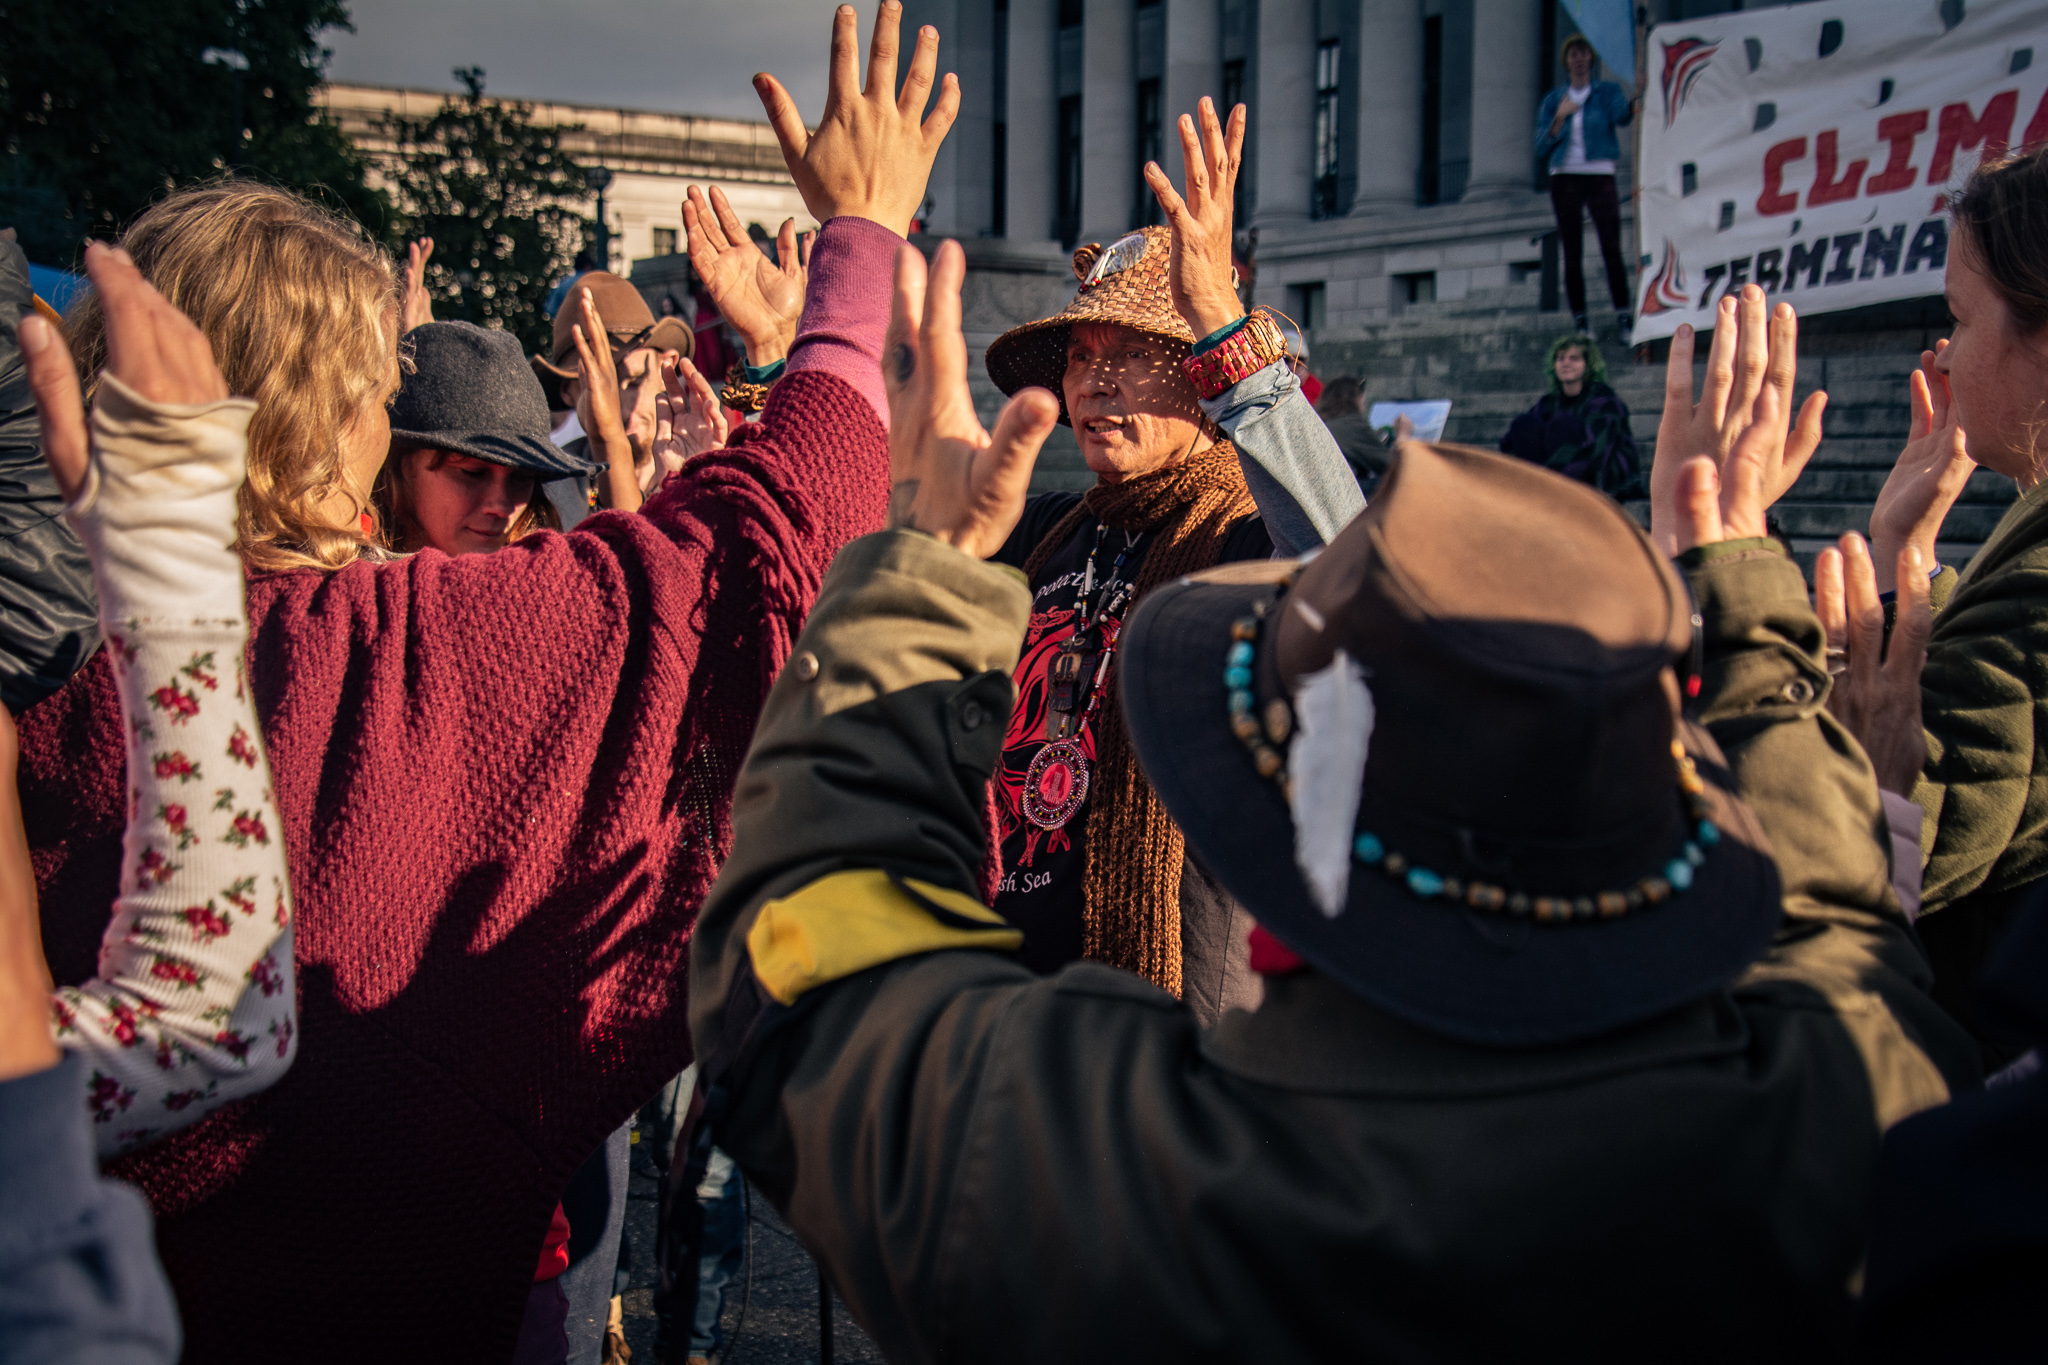 Caption: Indigenous leader Paul Che-Oke-tan Wagner (Vancouver Island Saanis), founder of Protectors of the Salish Sea, speaking at a rally on the steps of the Washington State Capitol (Olympia), October 5, 2019, Credit: Barbara Bernstein